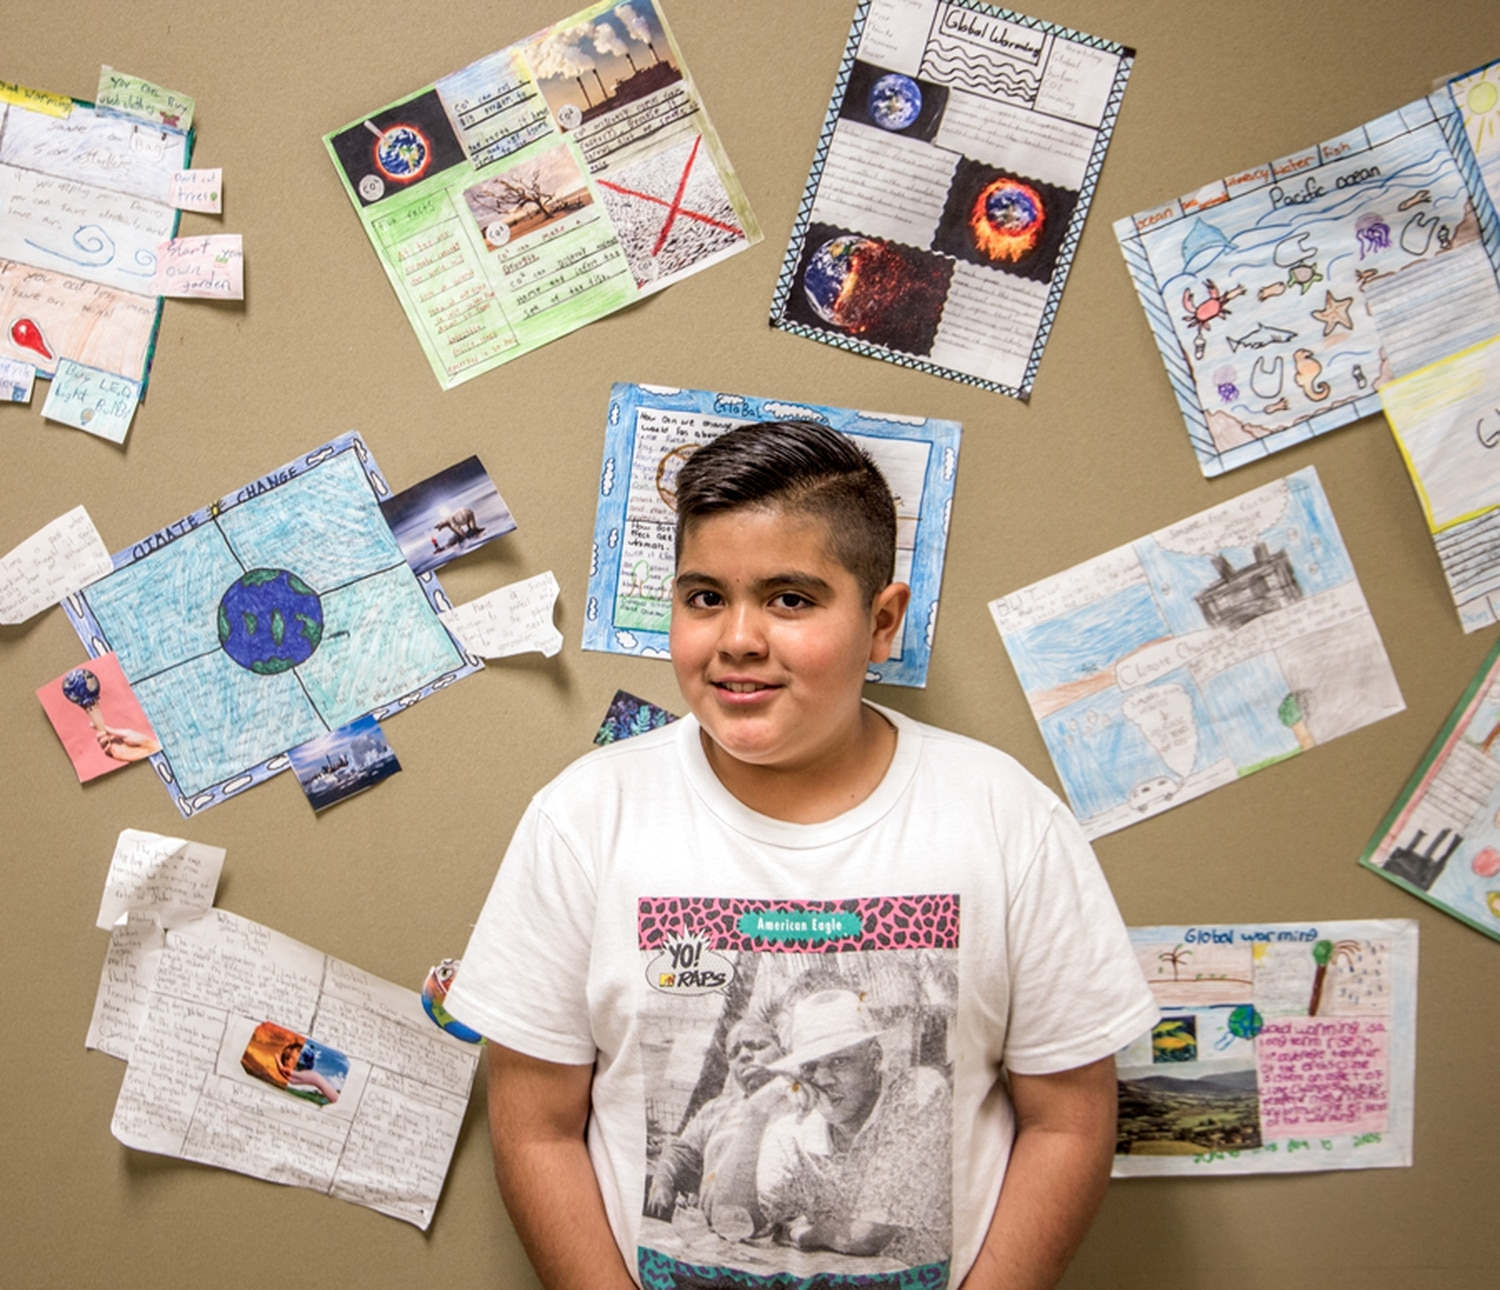 Rurabi Cerda, a fifth-grader at El Camino Real Academy, stands in front of class projects on climate change.